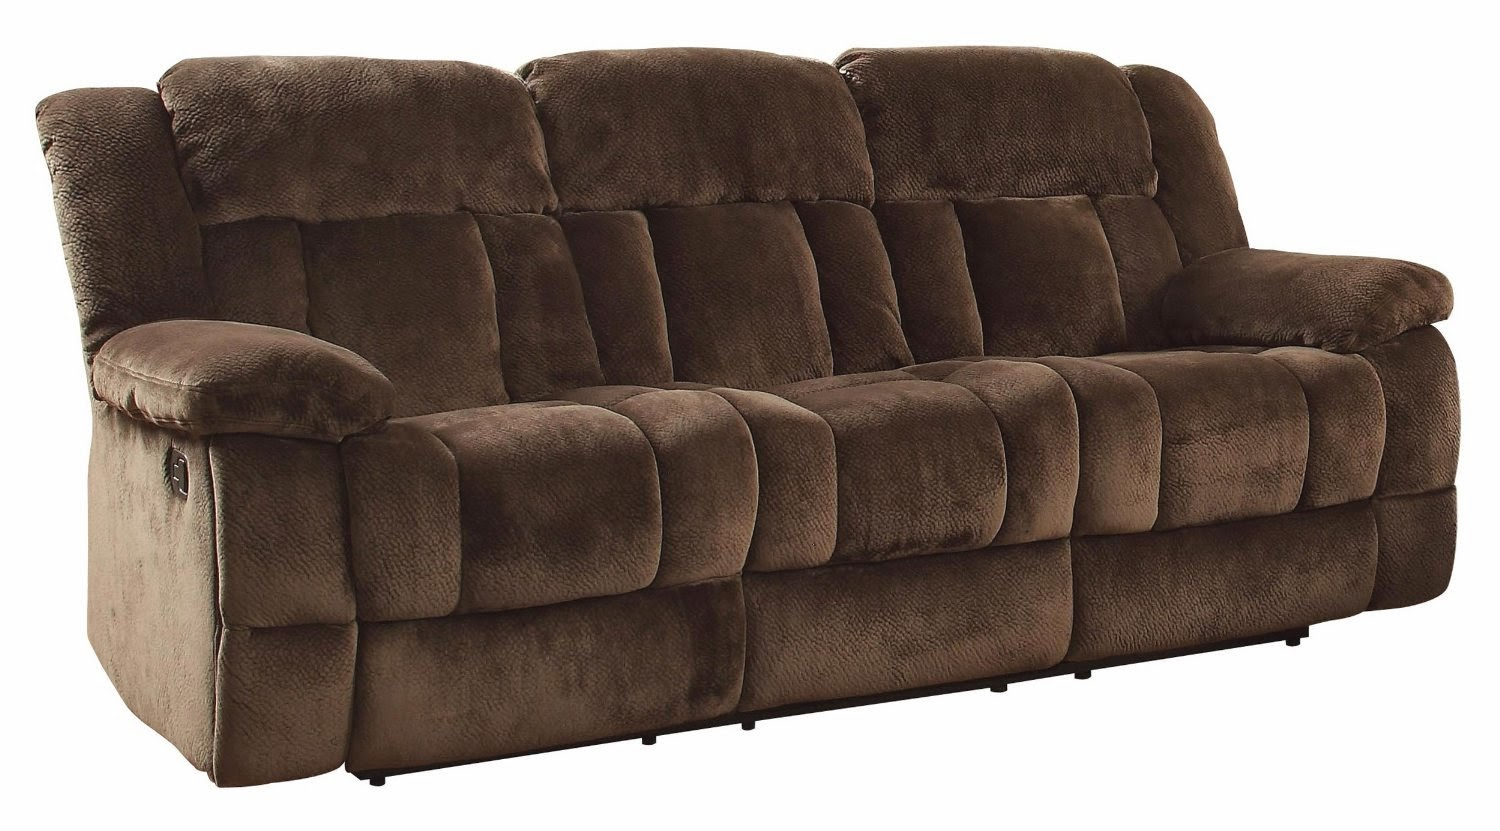 Cheap reclining sofas sale fabric recliner sofas sale for Sofas